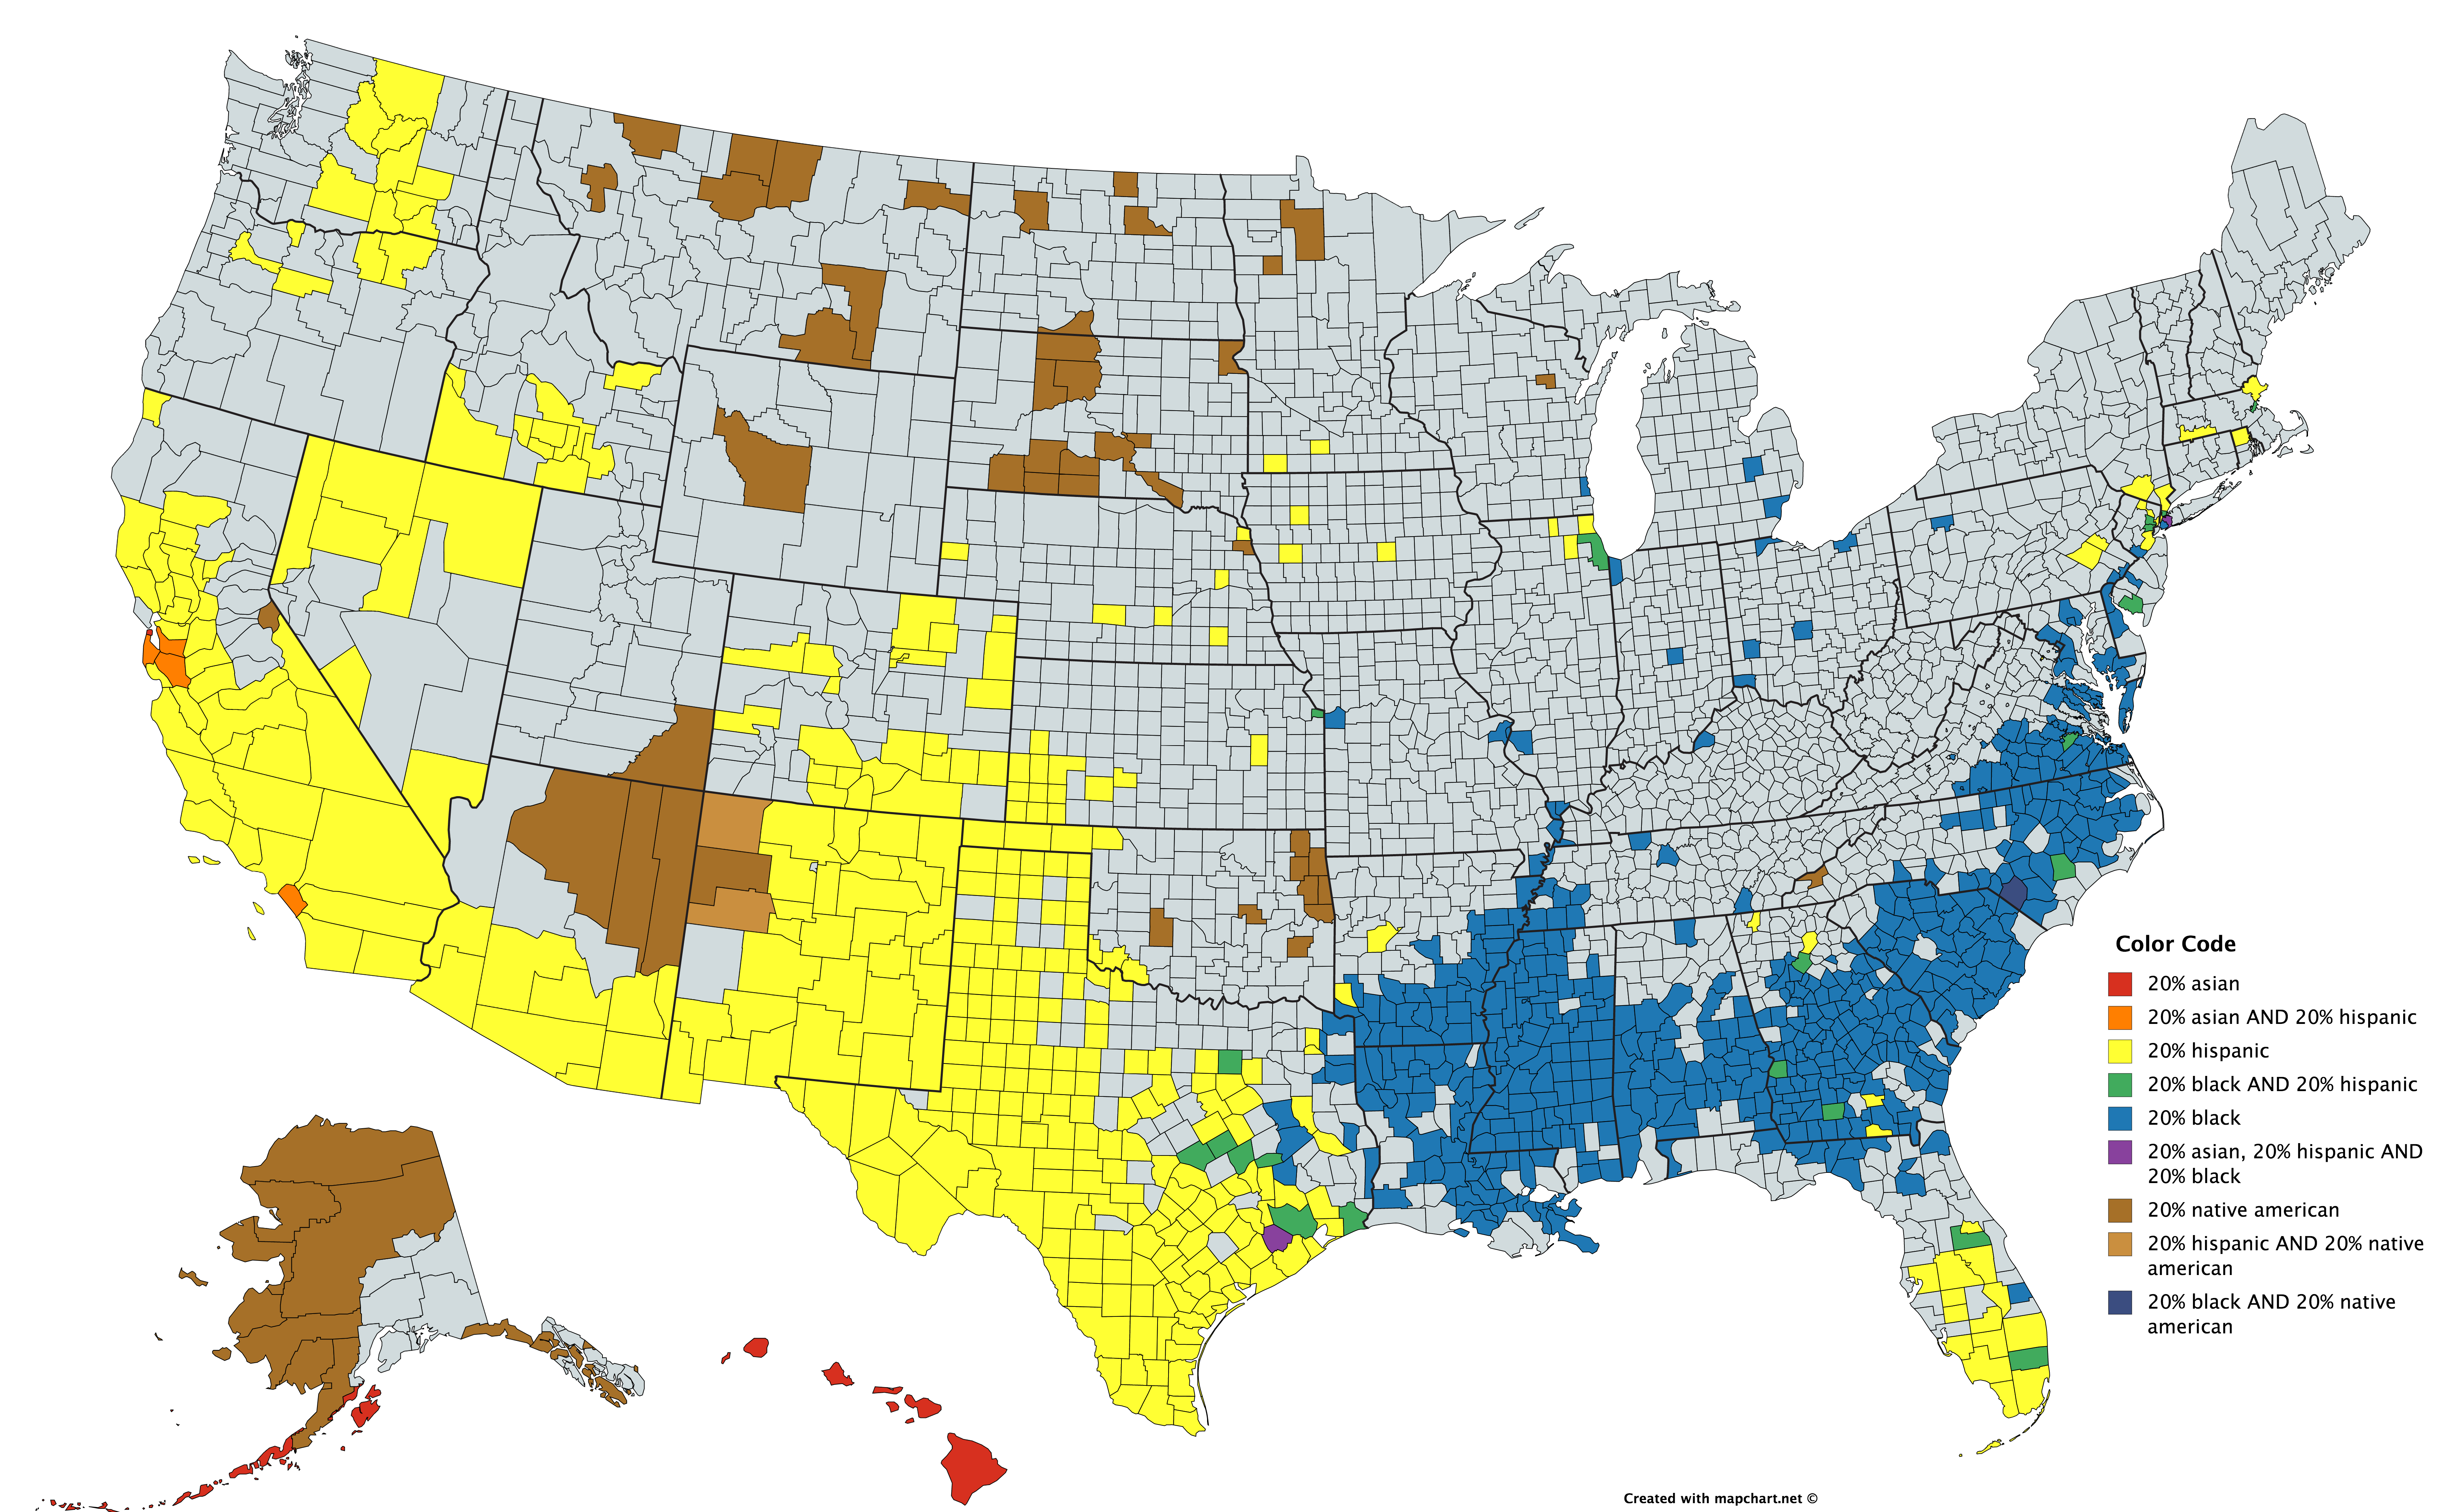 Significant Racial Minorities In Each County U S Maps Charts - Us-map-chart